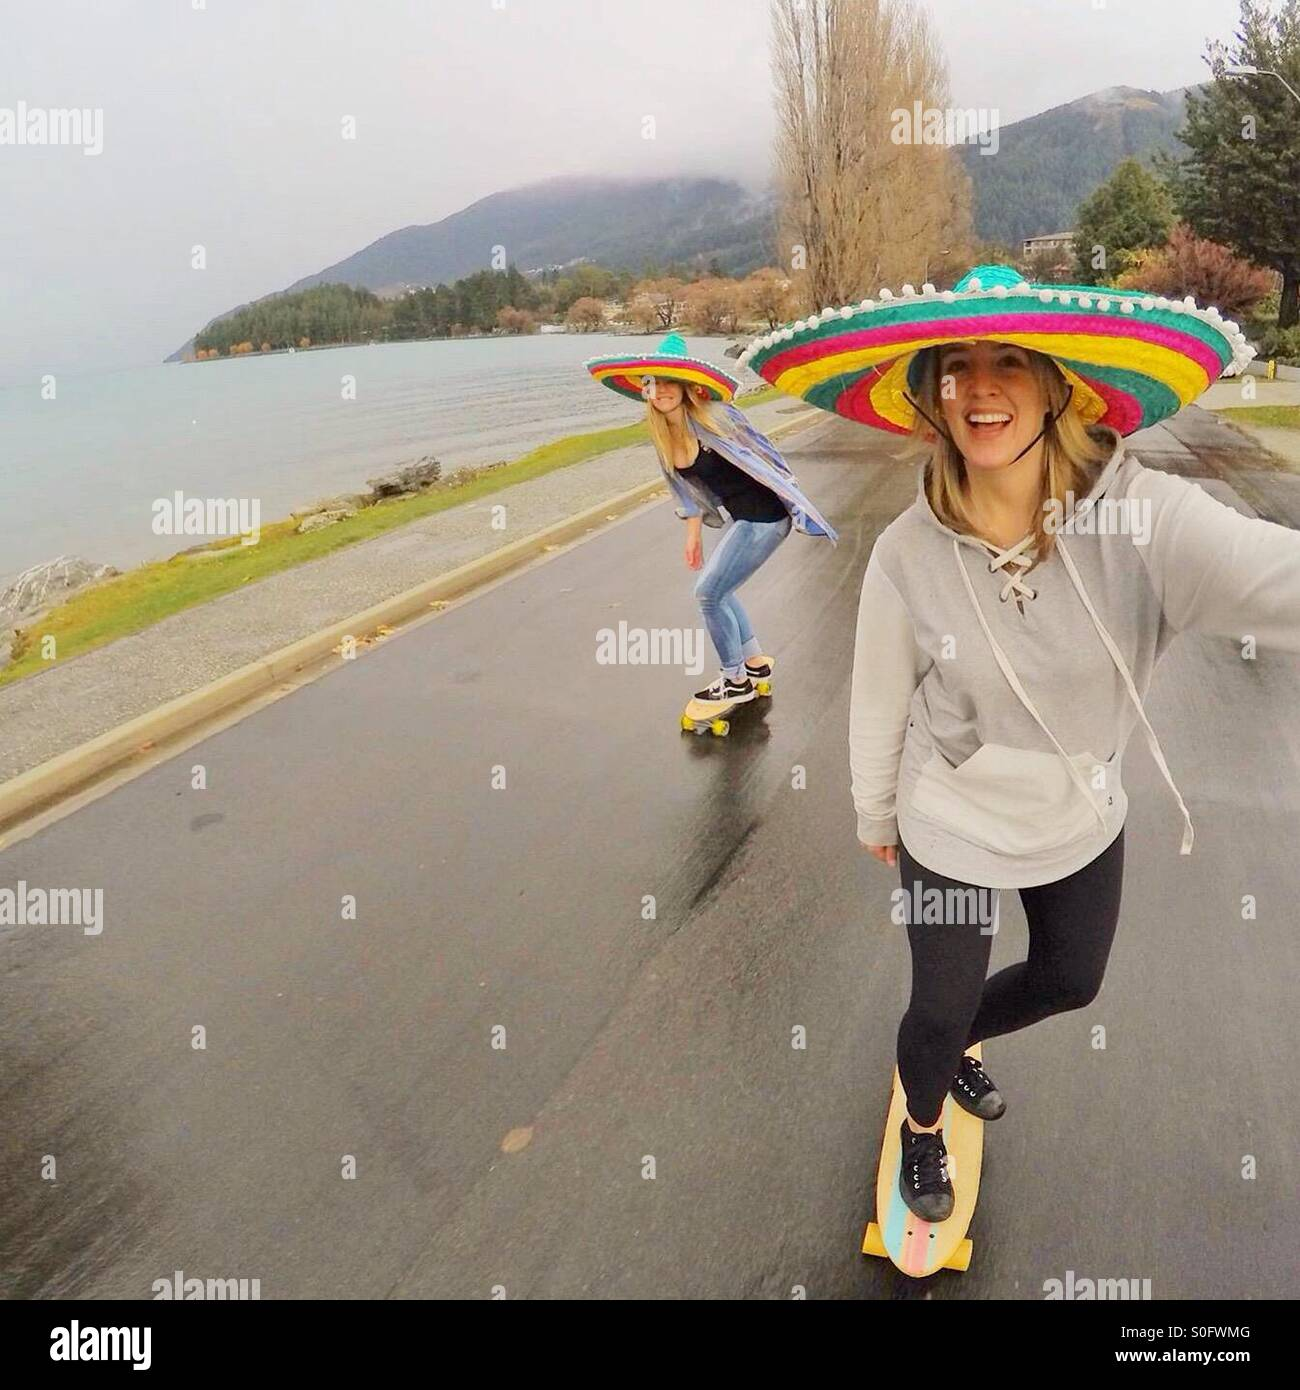 Having a siesta on a rainy day in Queenstown - Stock Image